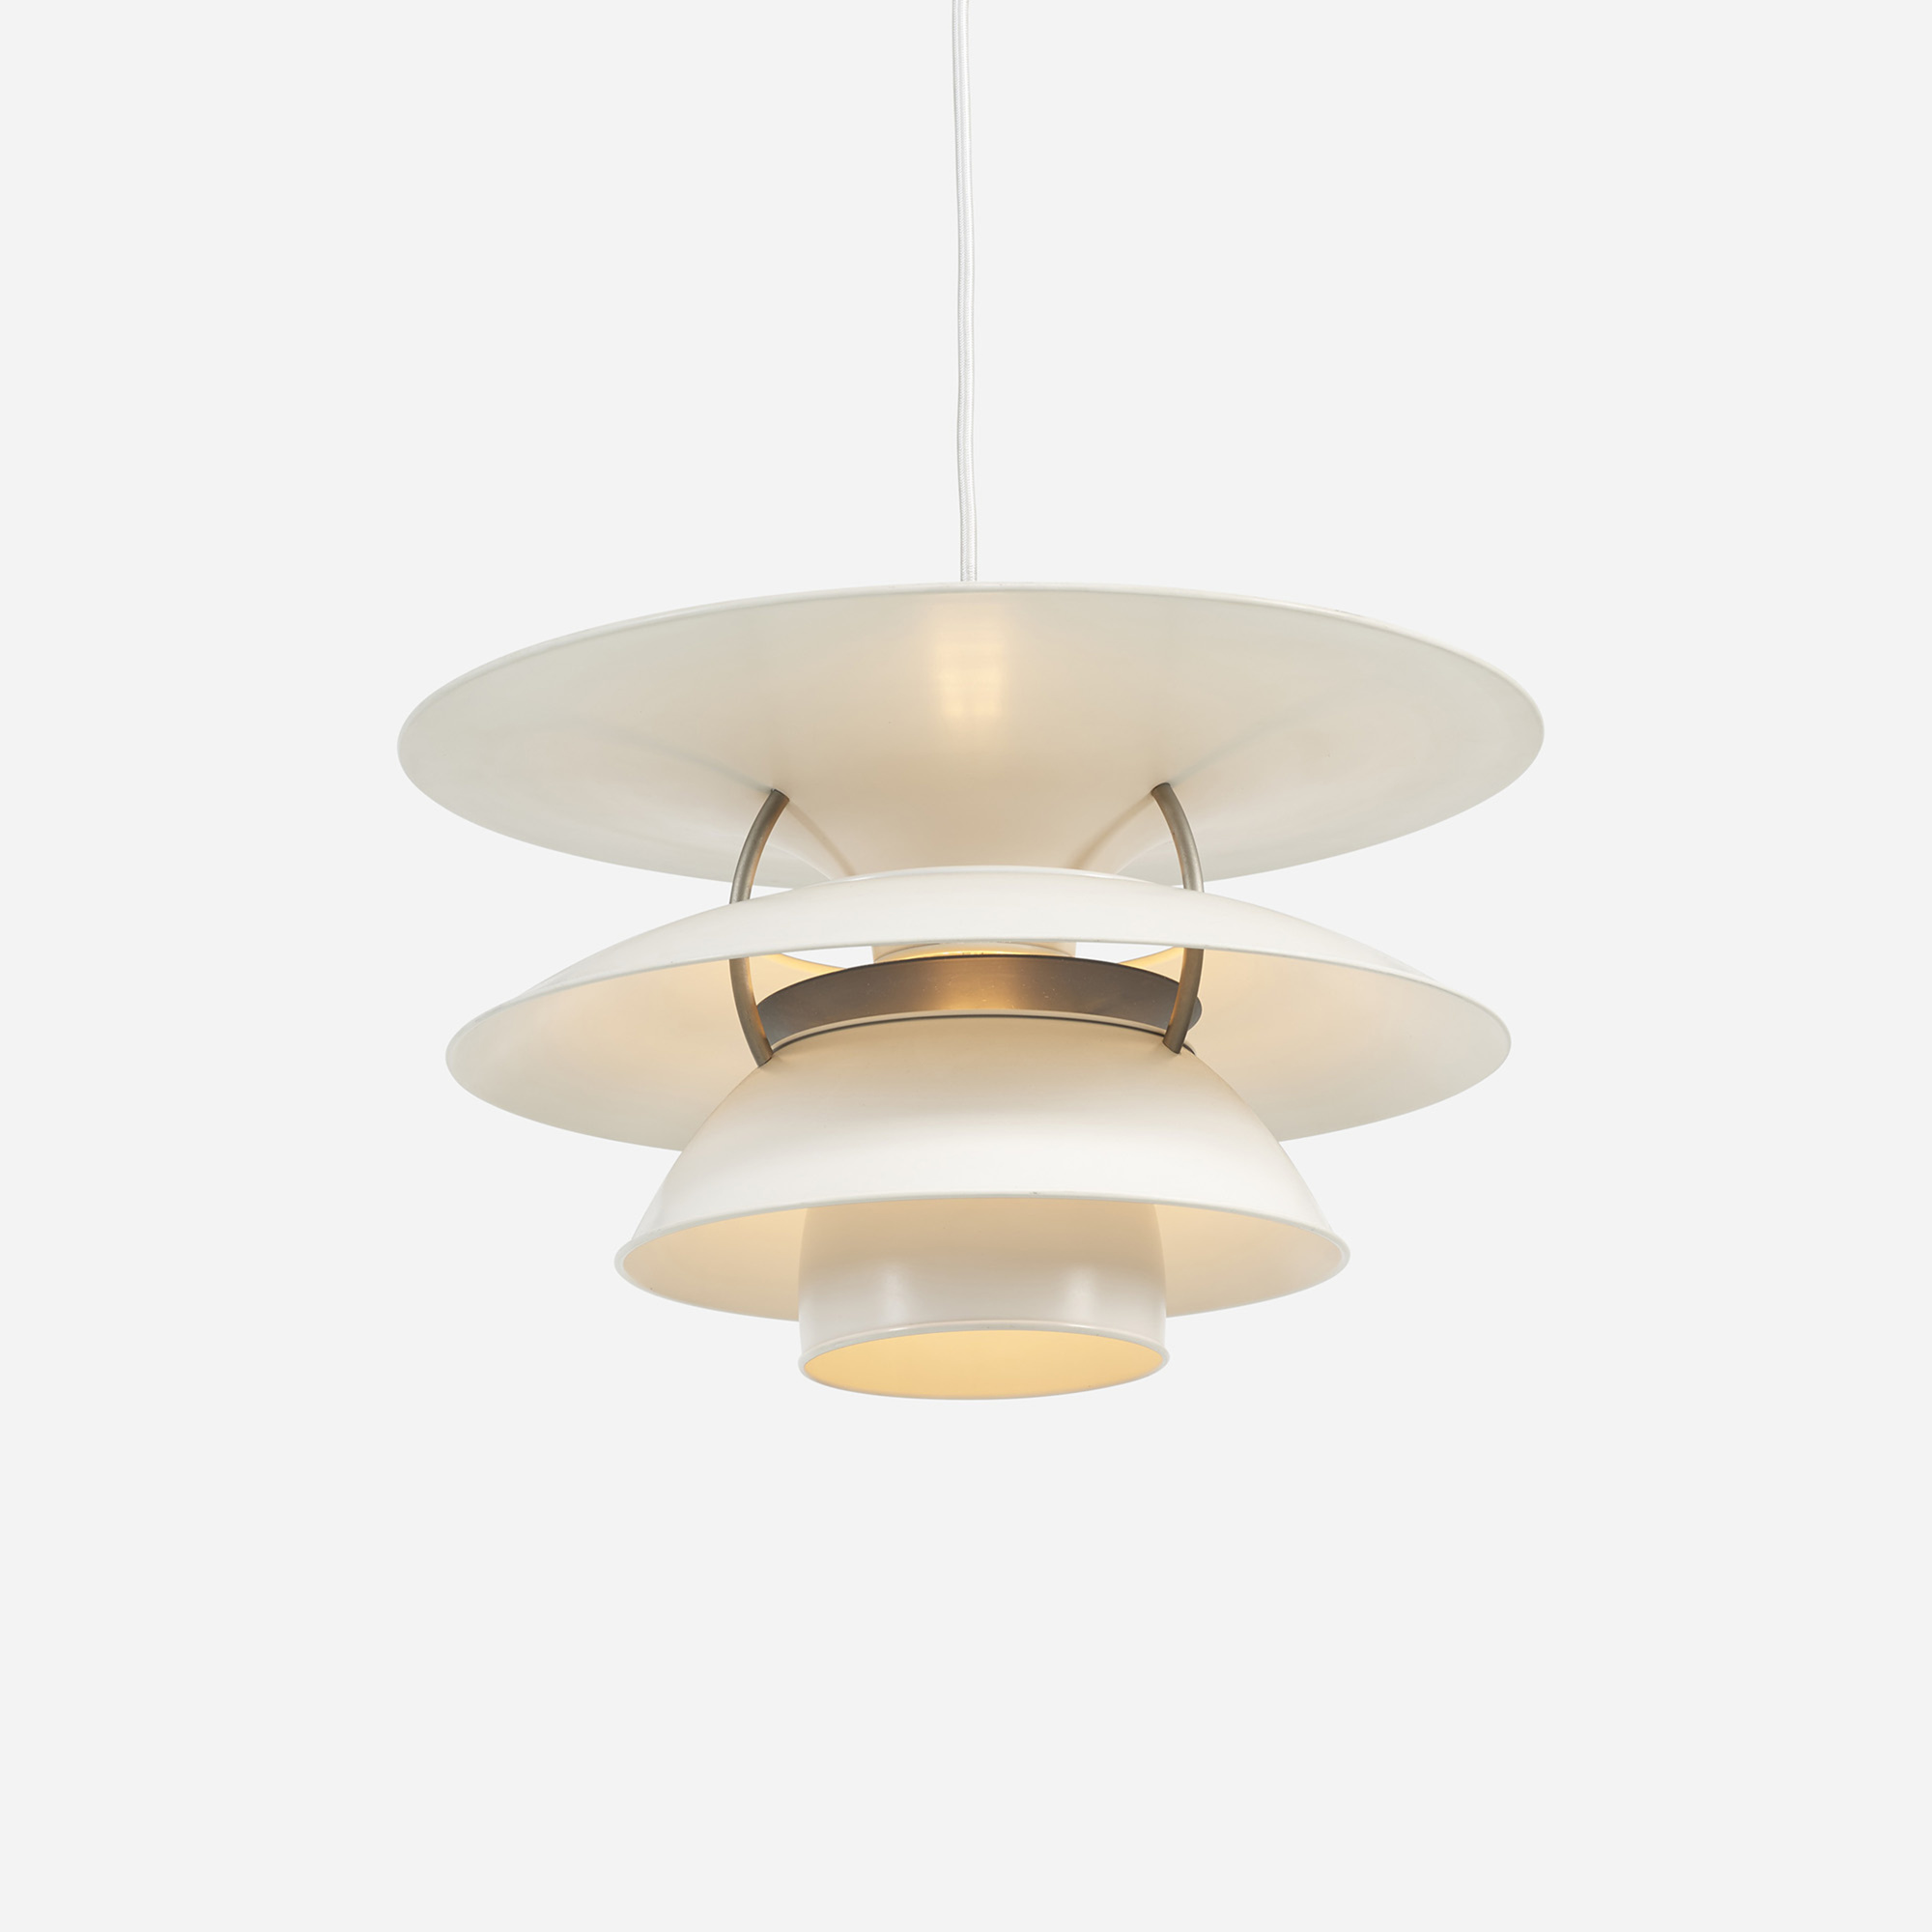 347: Poul Henningsen / PH 5/4.5 pendant (1 of 2)